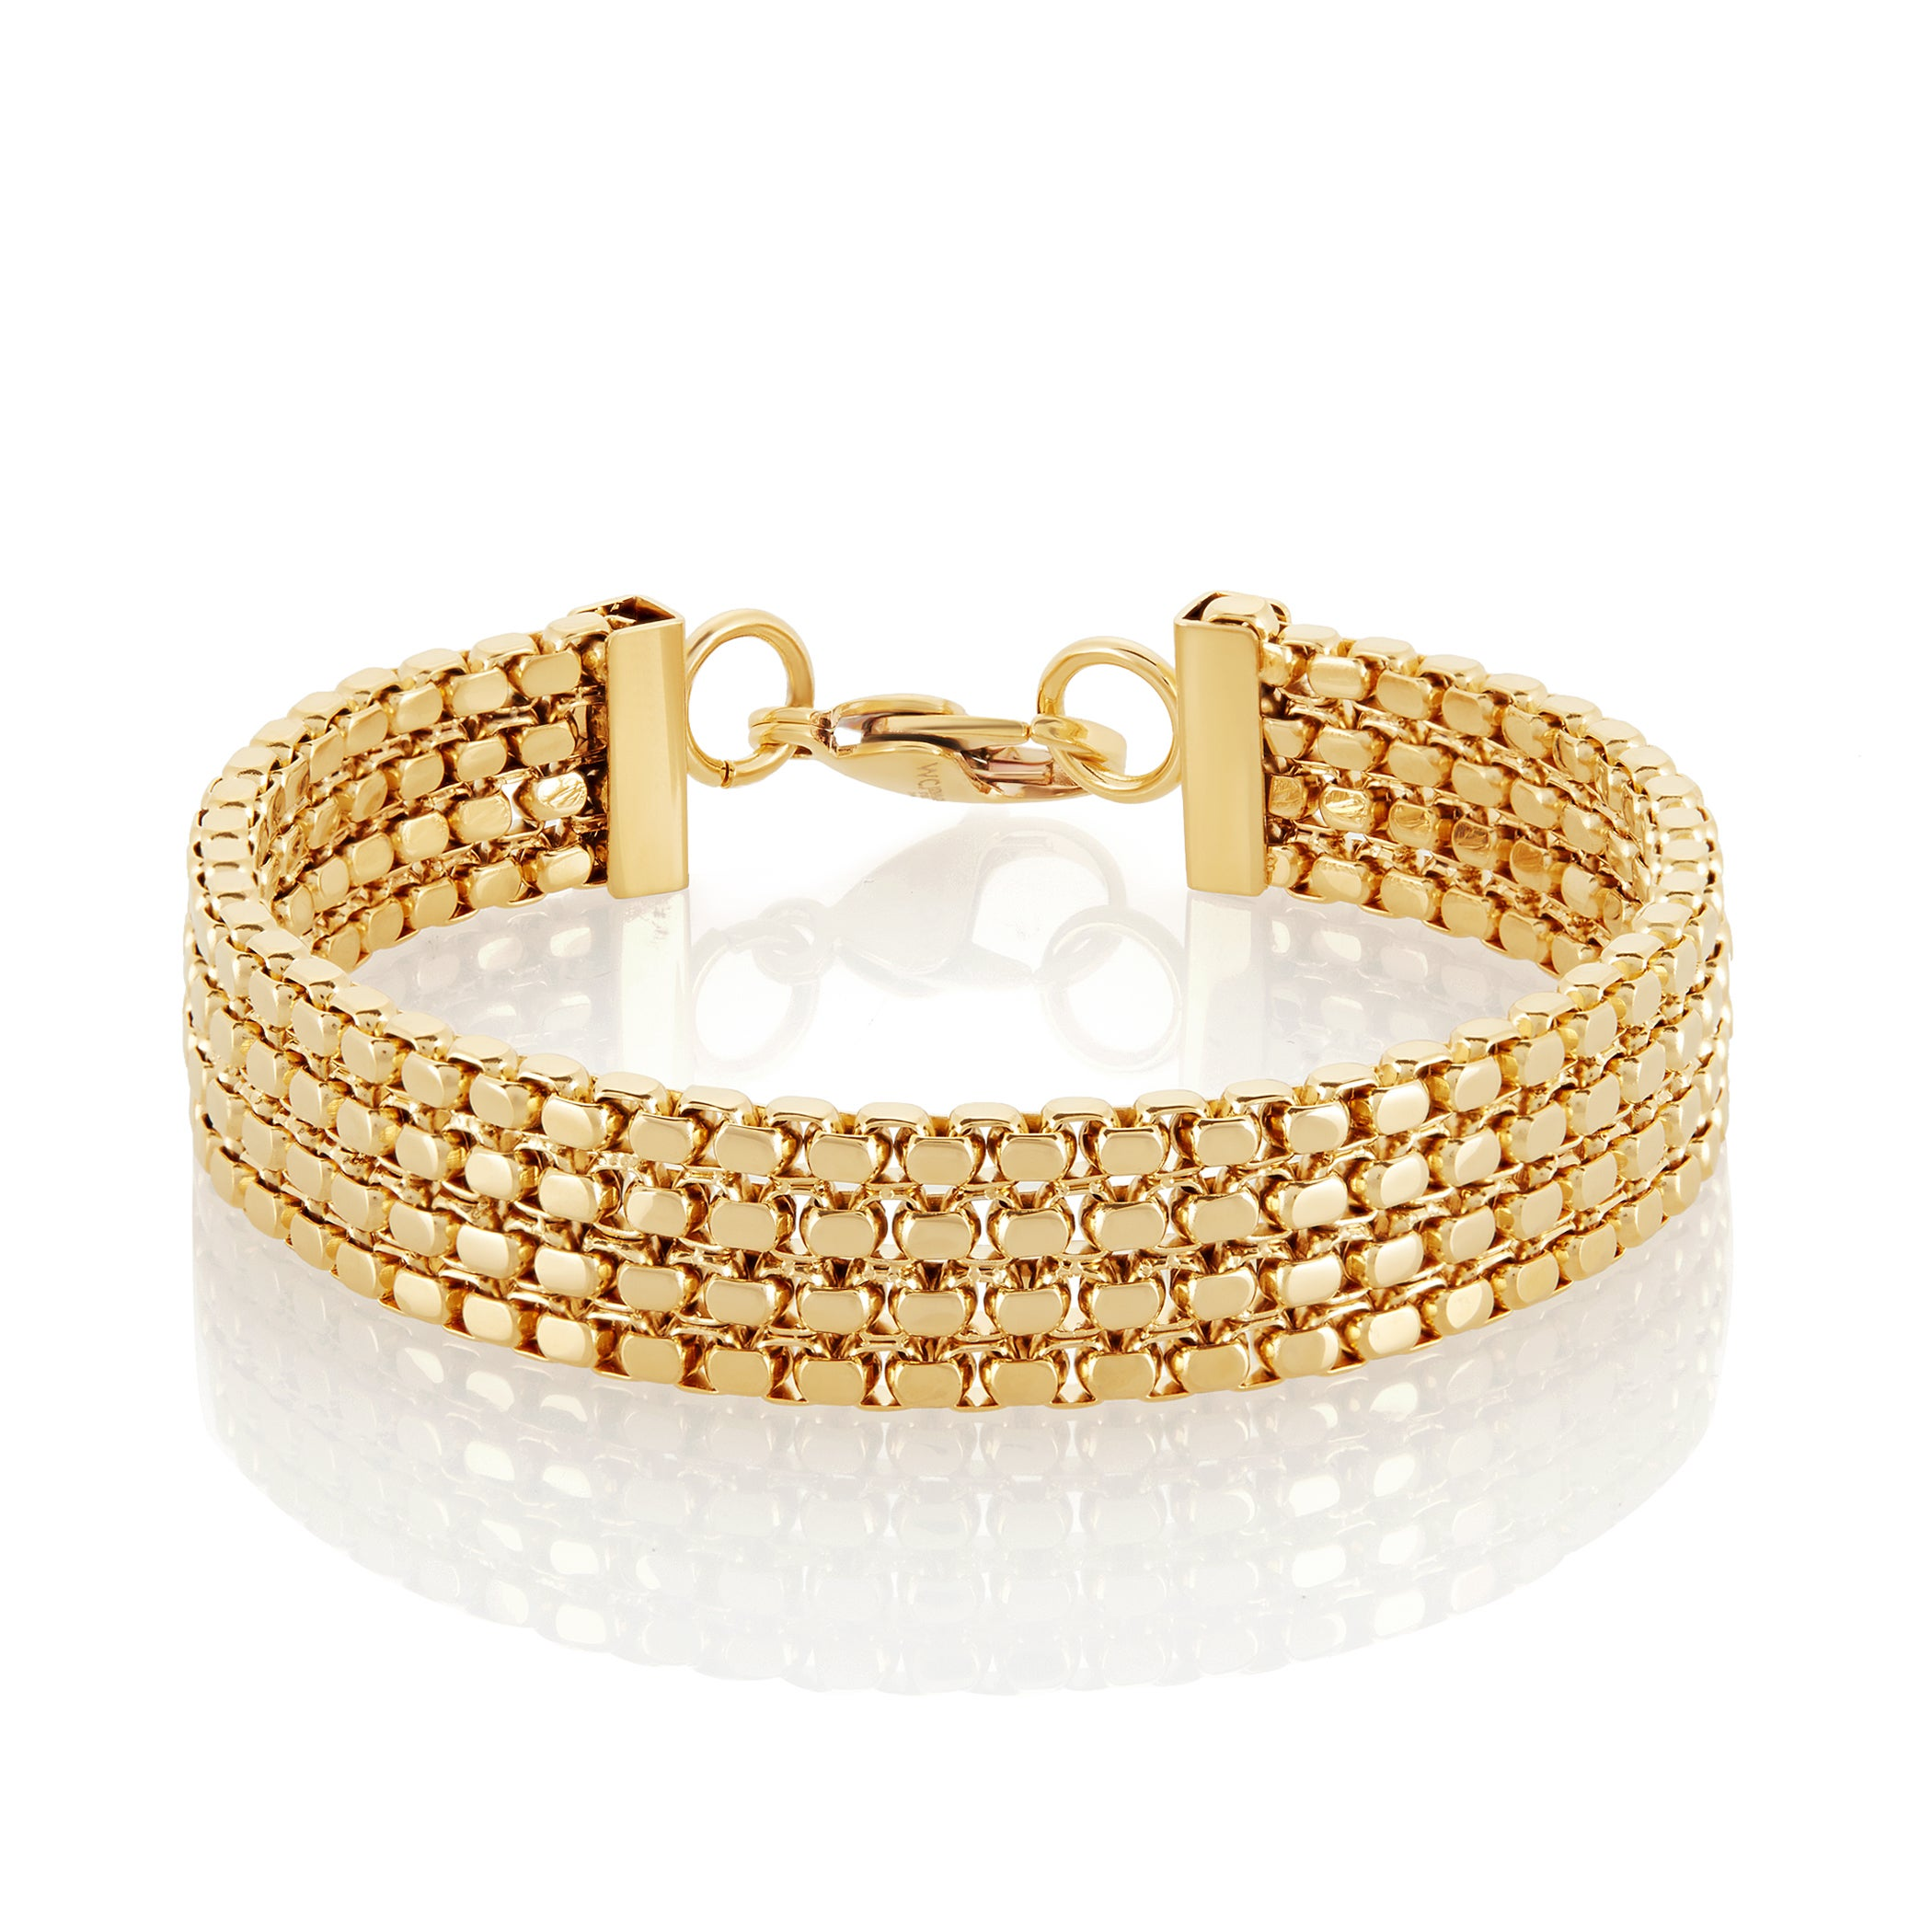 West Coast High Polish Gold Plated Box Chain Stainless St...